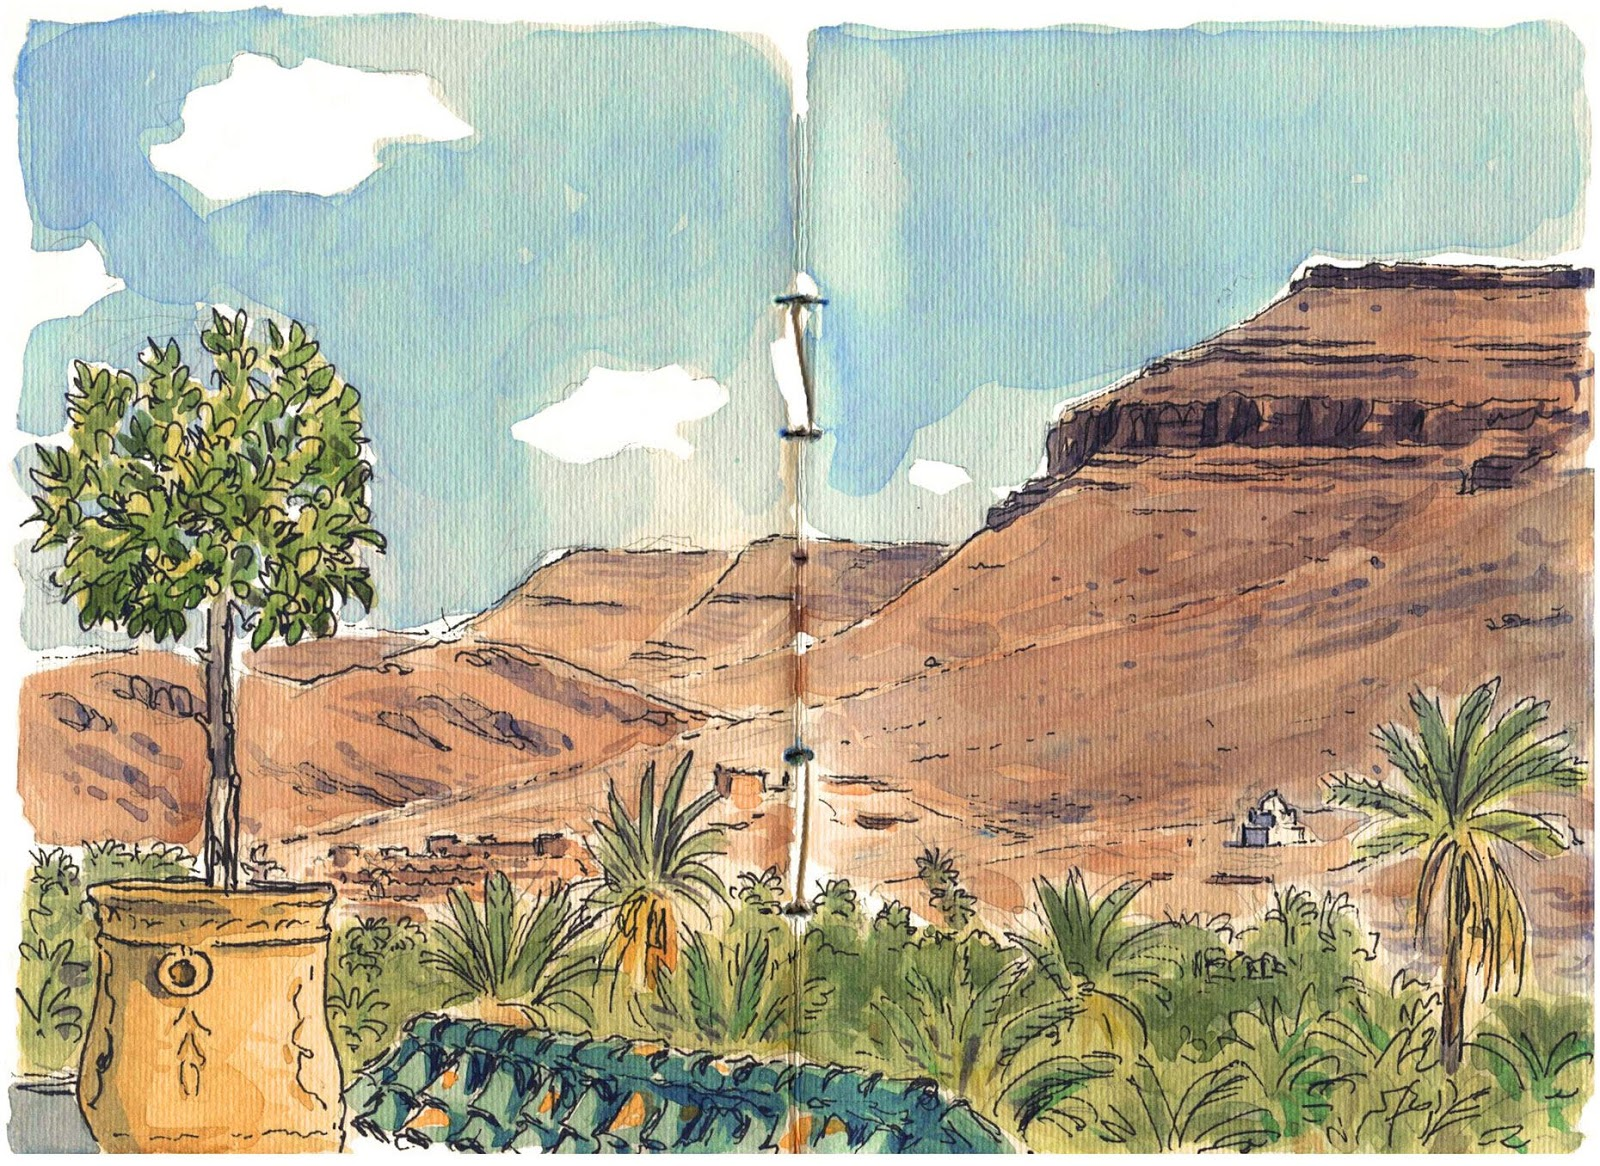 watercolor sketch in Fint oasis